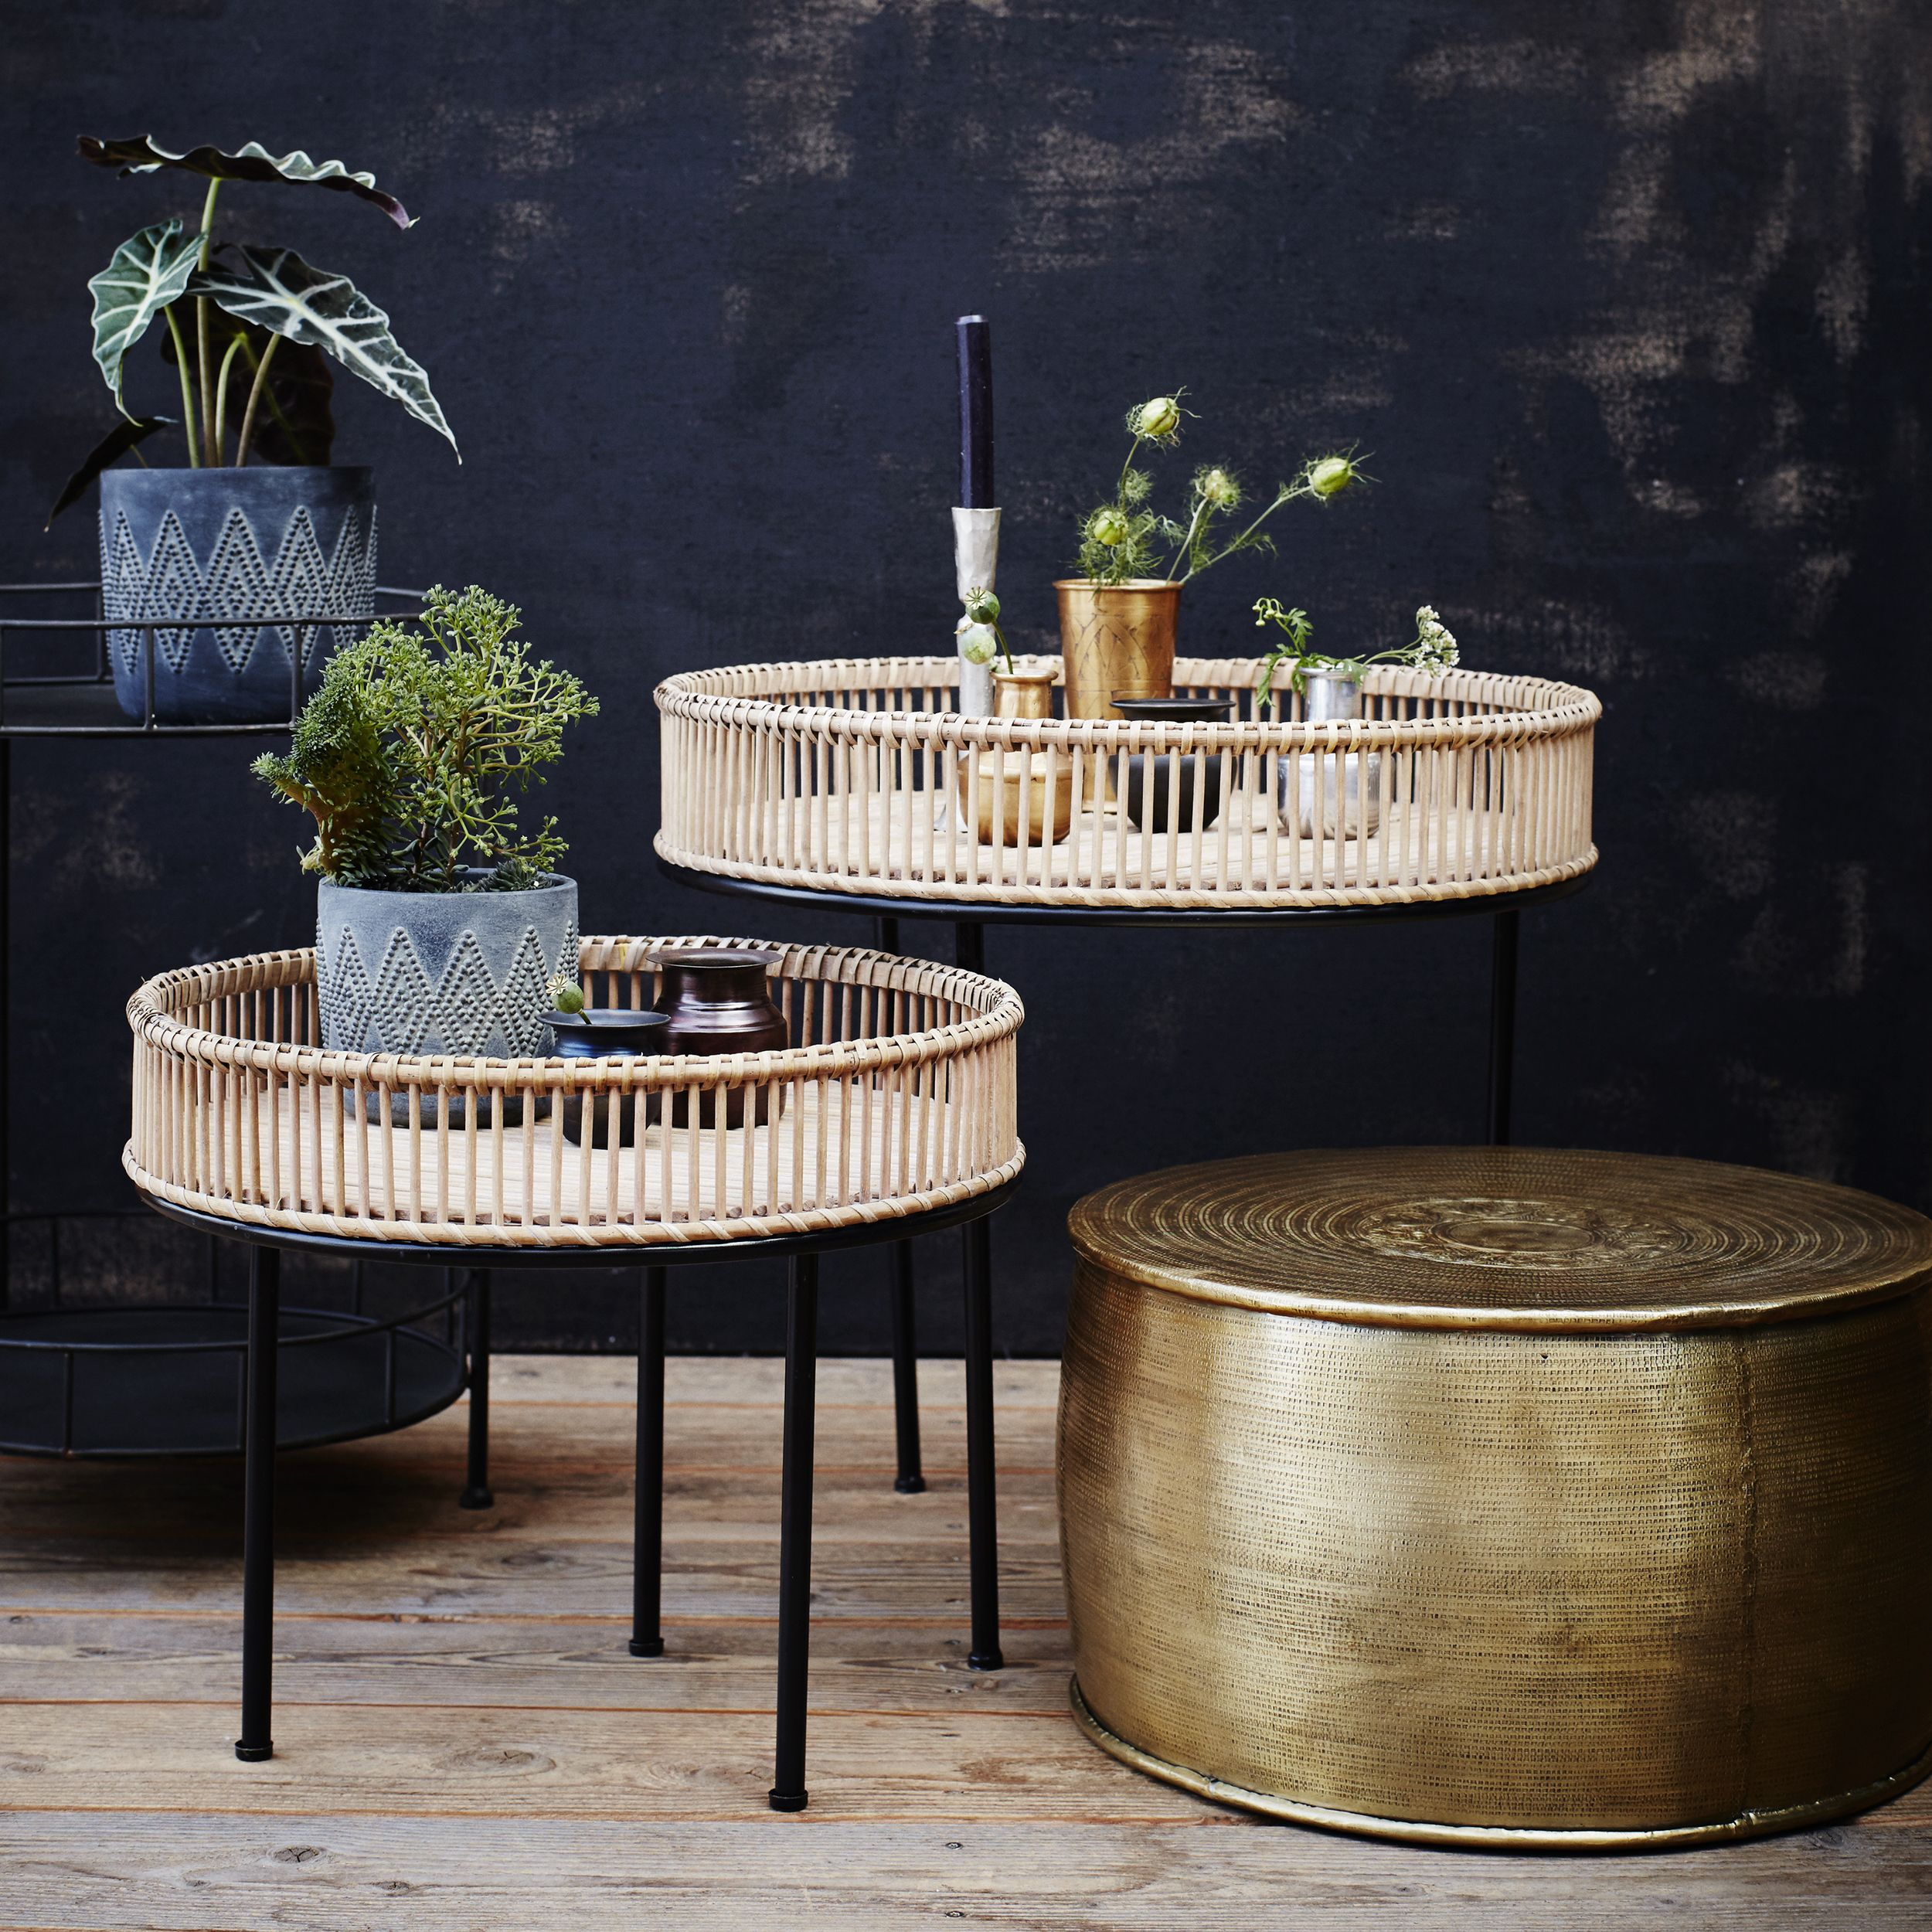 12 Living Room Storage Ideas To Up Your Space Metal Side Table Coffee Table Rattan Coffee Table #storage #side #table #living #room